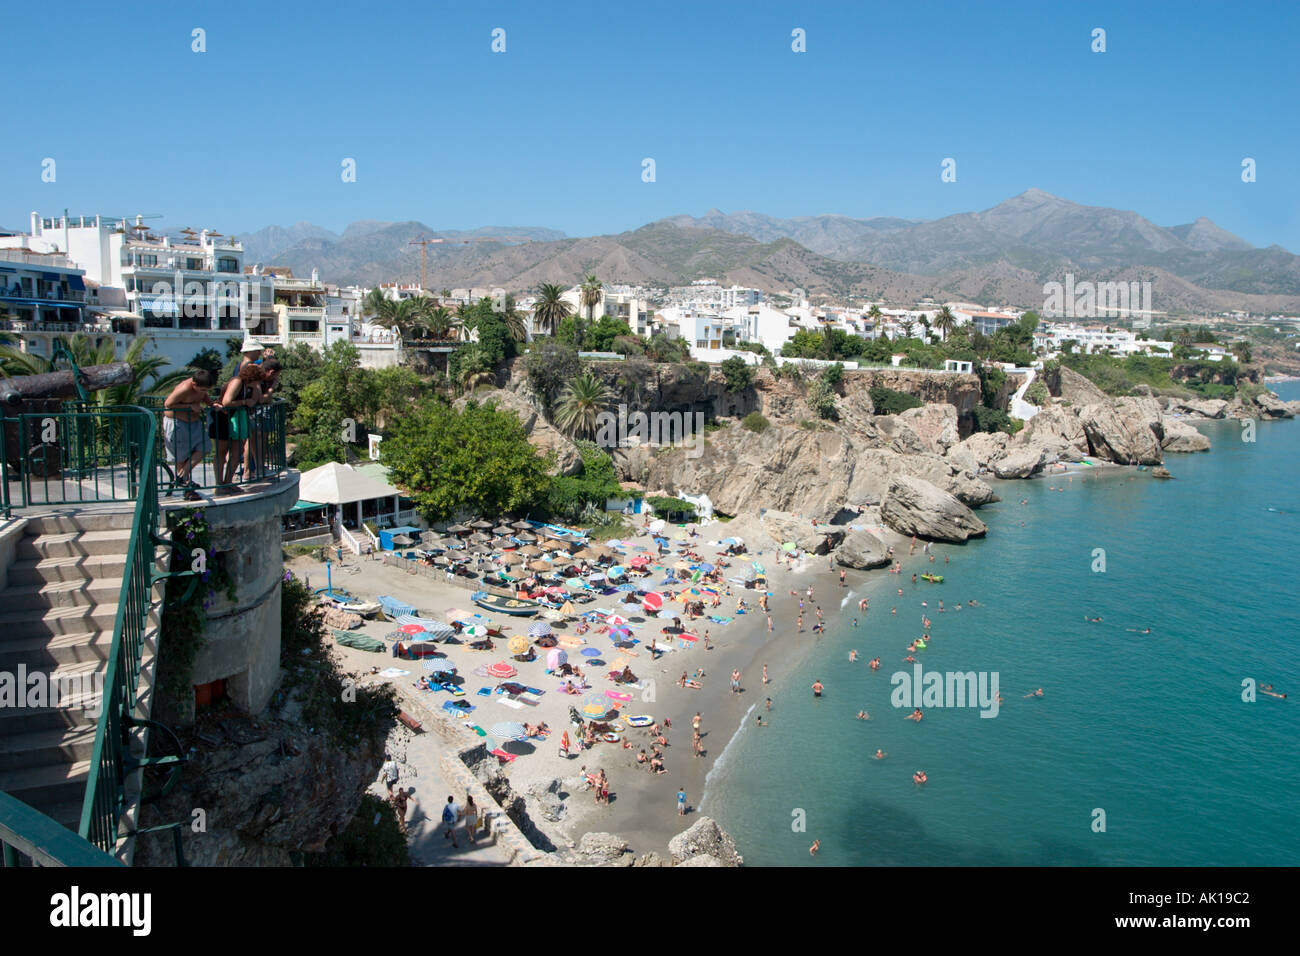 View from the Balcón de Europa in the old town , Nerja, Costa del Sol, Andalusia, Spain - Stock Image